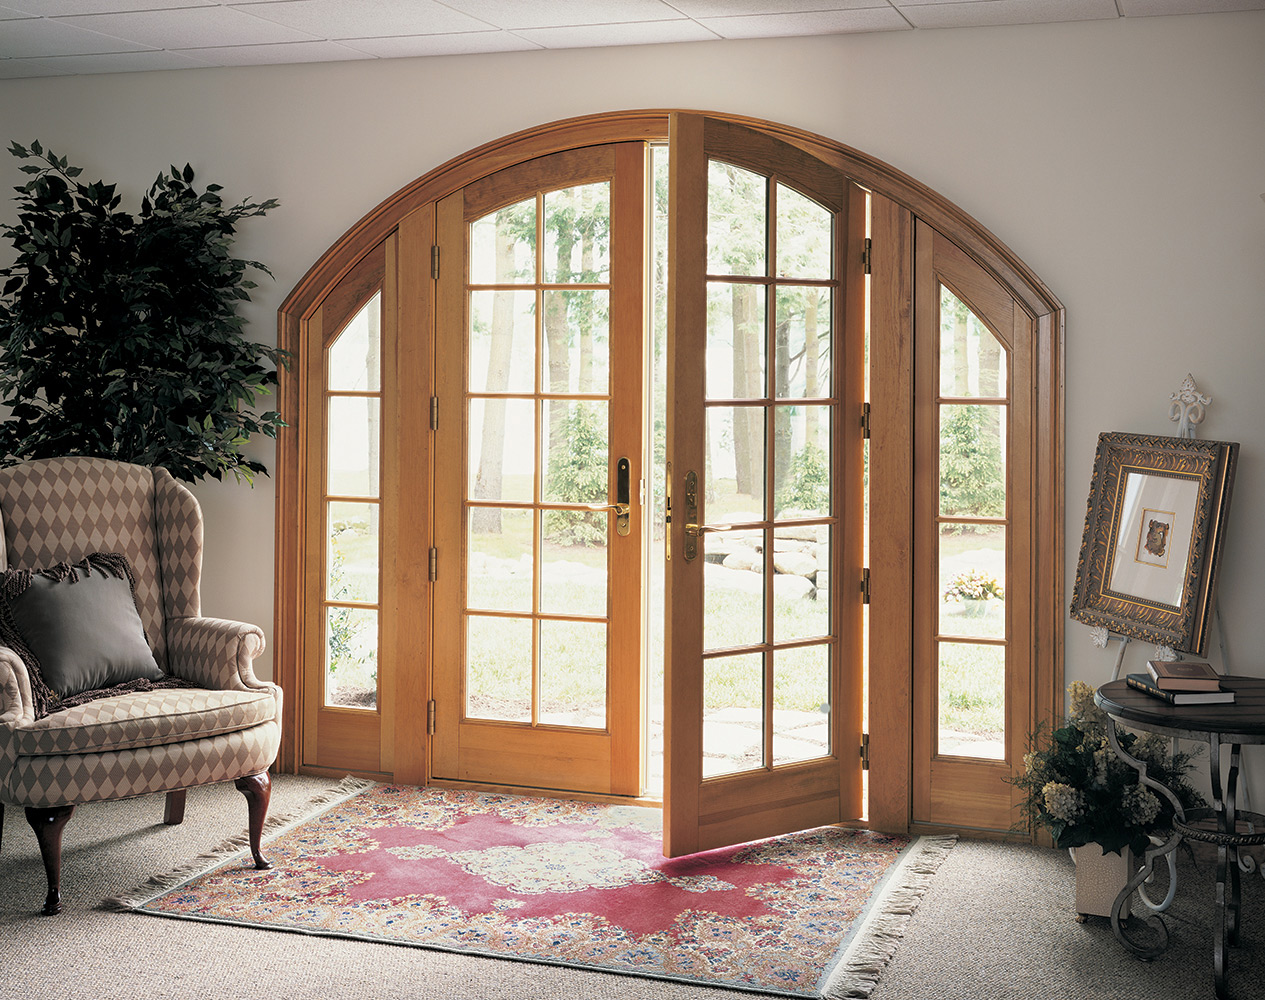 Replacement patio doors wisconsin hometowne windows for Patio doors french doors